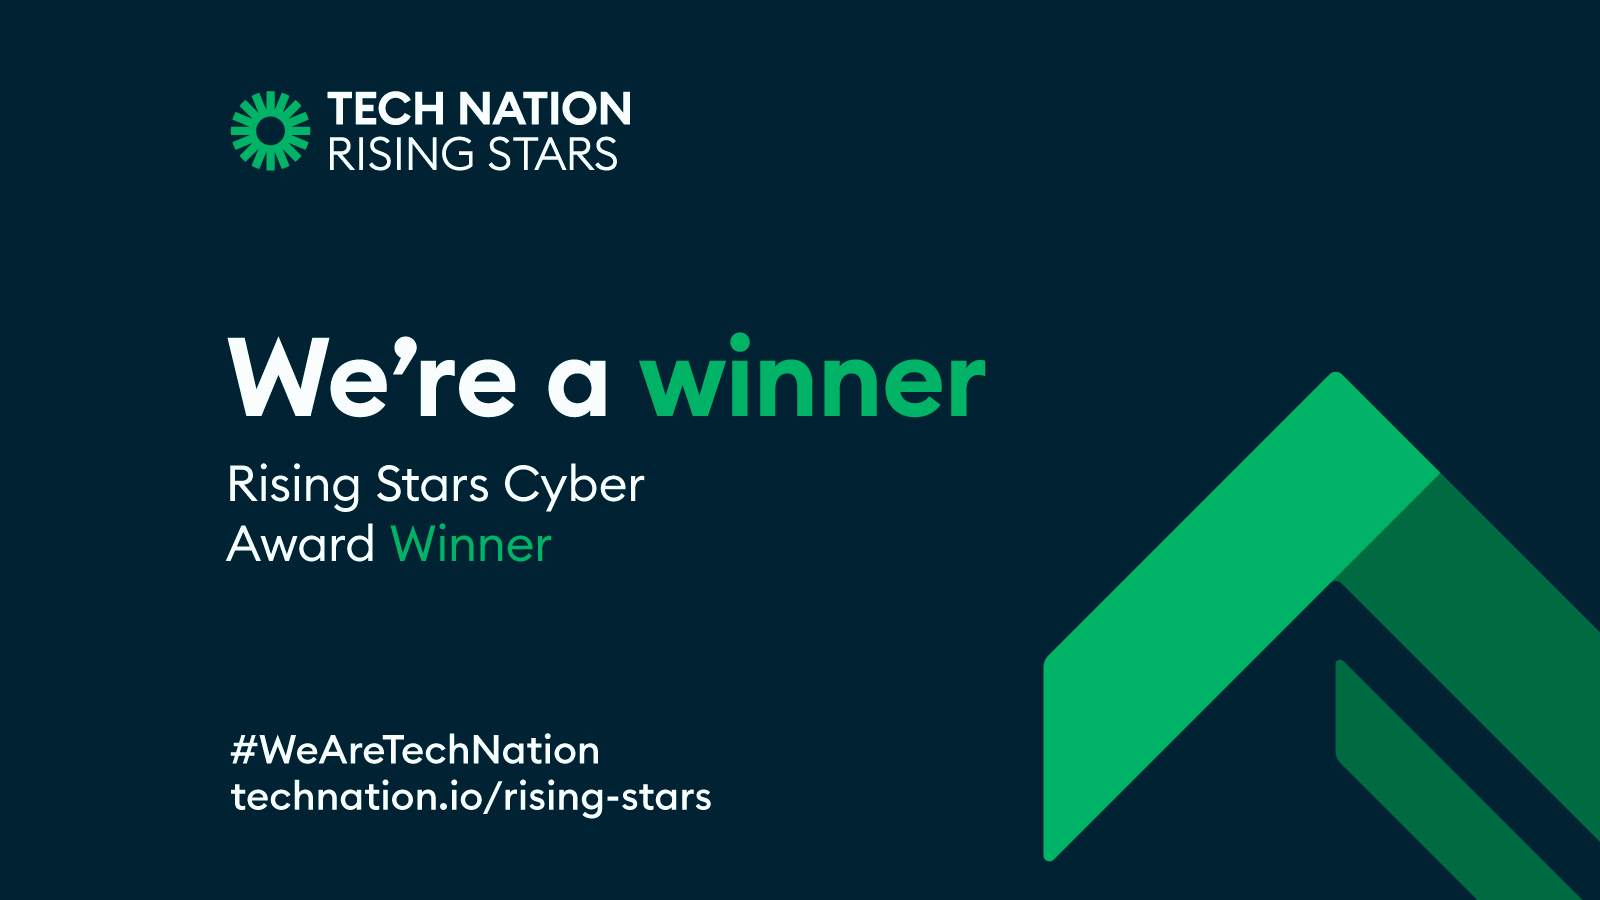 Beacon wins Tech Nation Rising Stars 3.0 Cyber Award